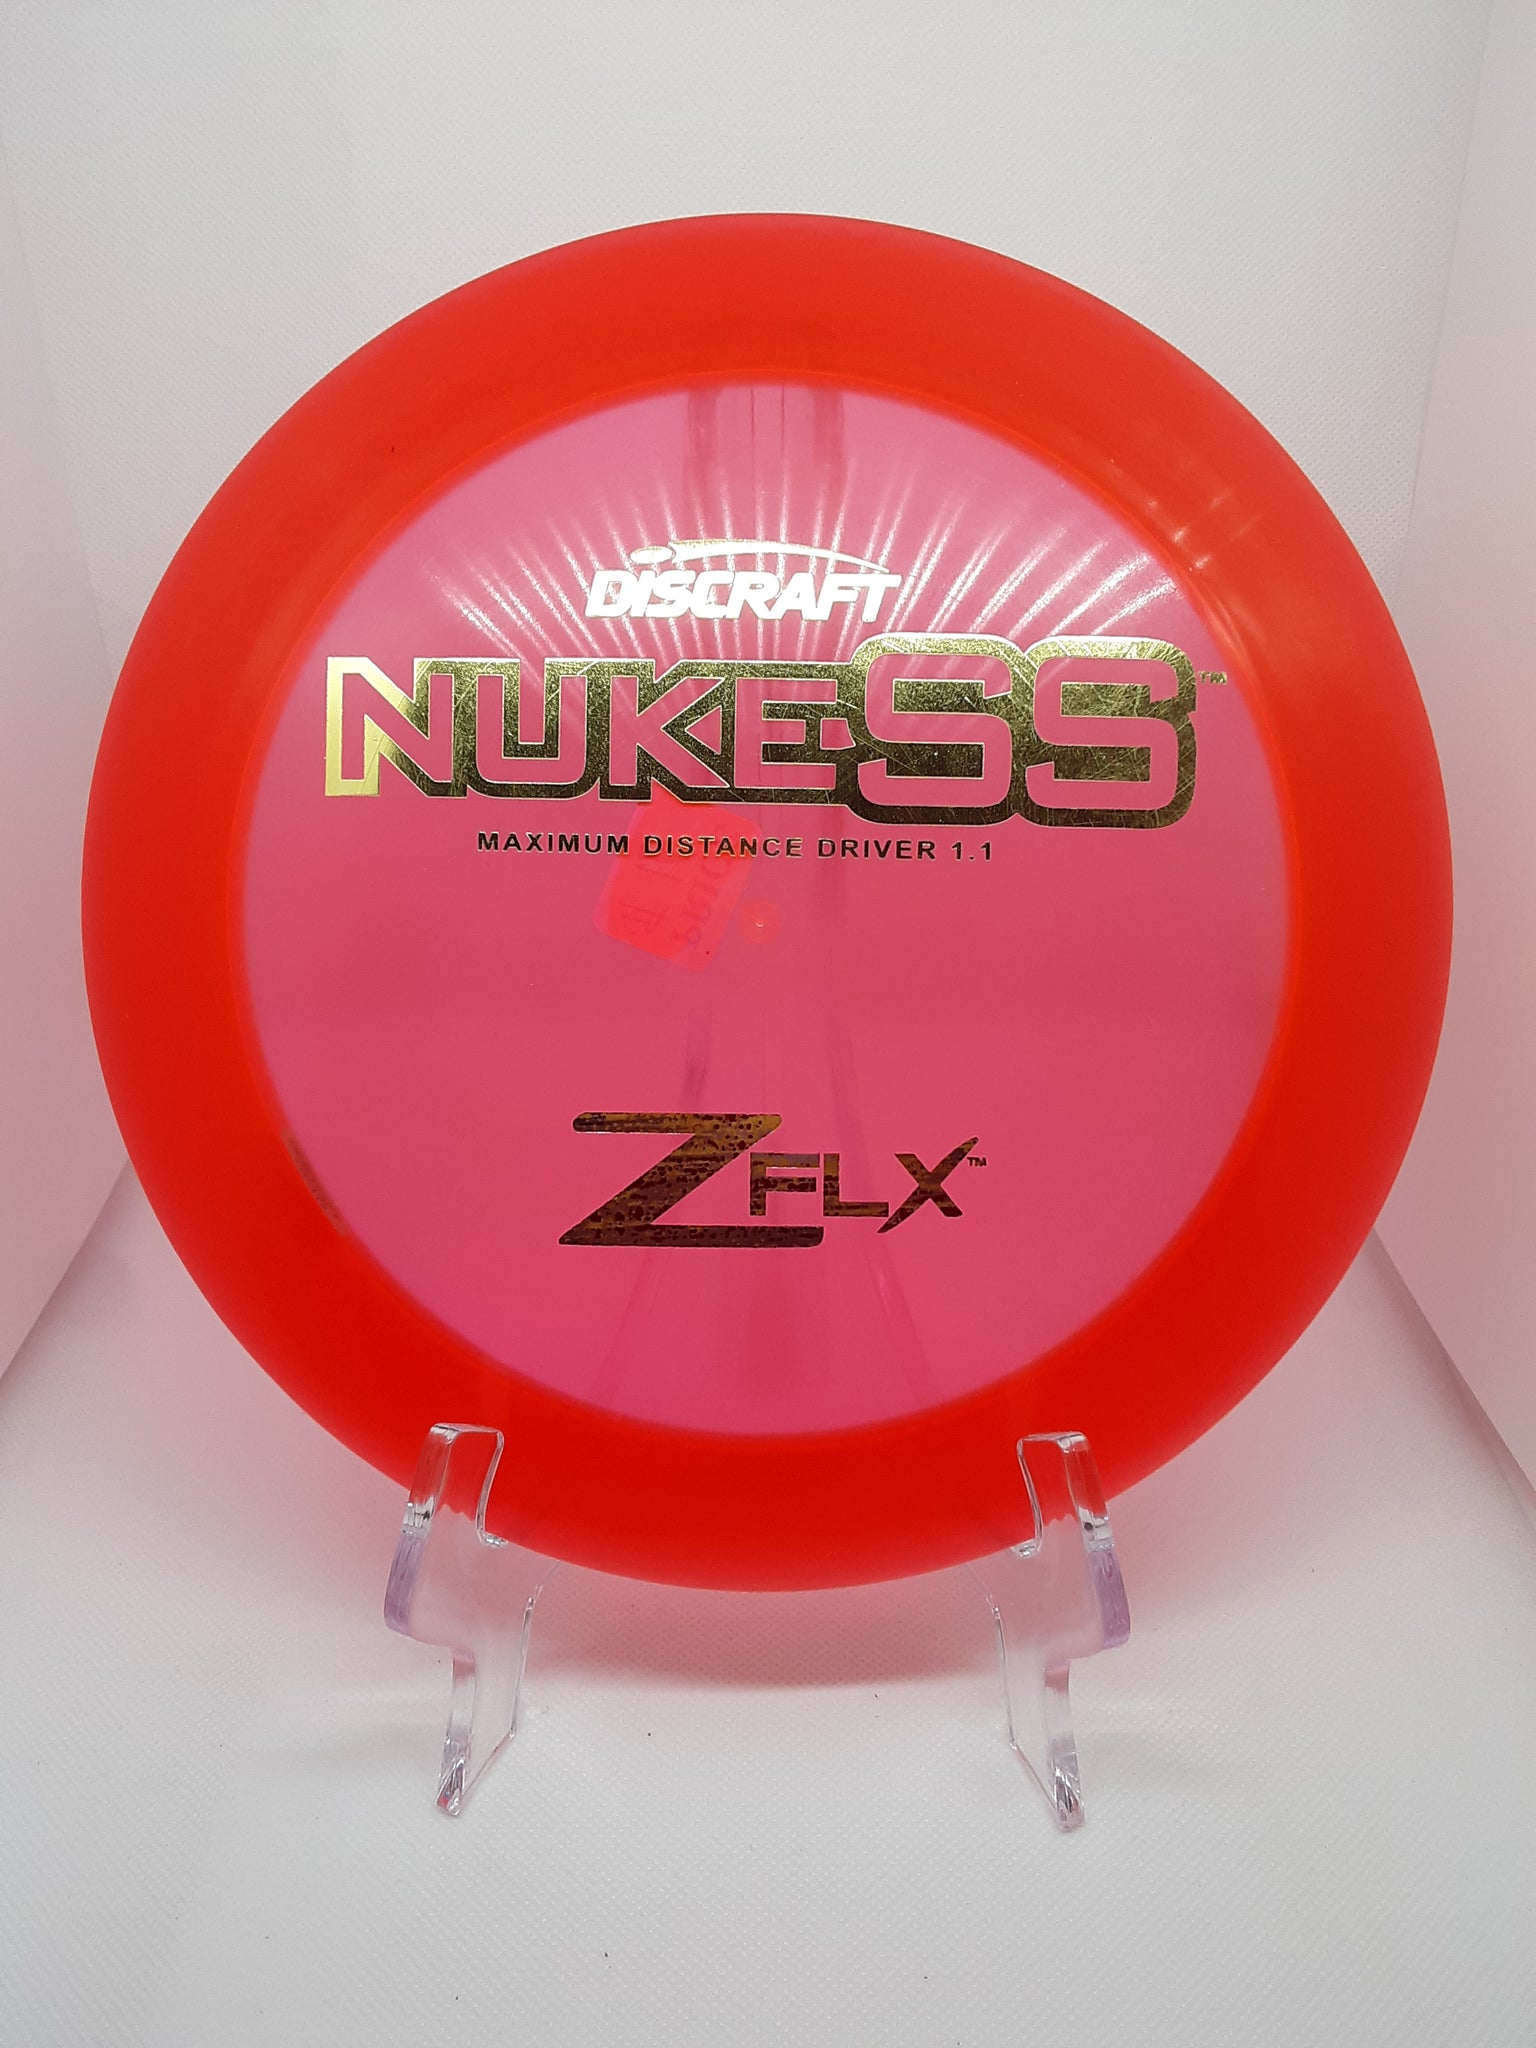 Nuke SS ( Z FLX ) Out of Stock